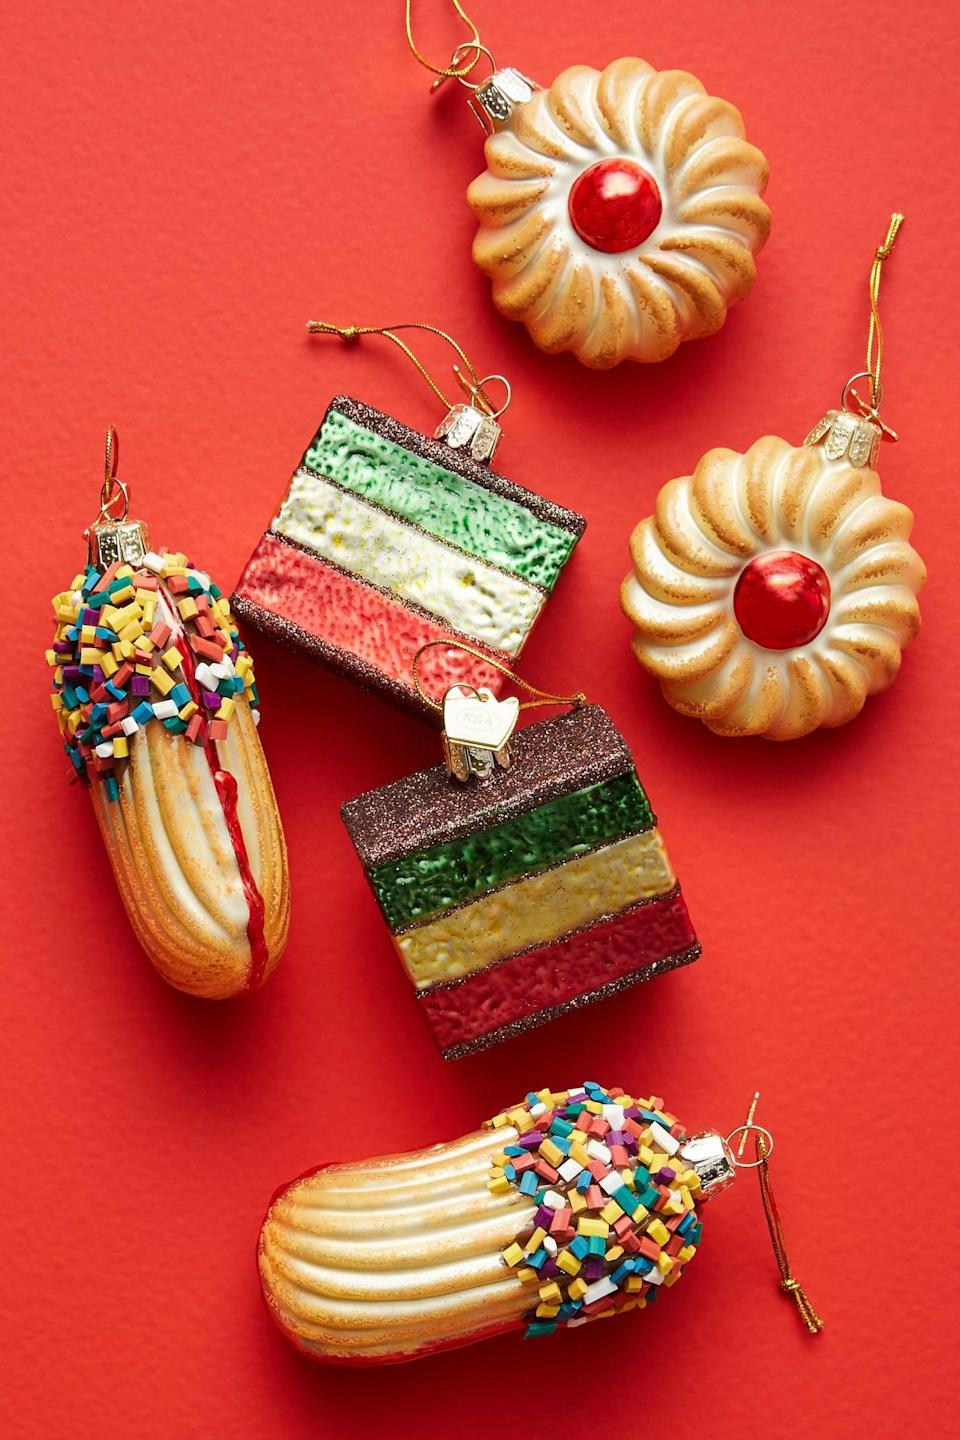 """<p>Add a sweet touch to your holiday decor with the <a href=""""https://www.popsugar.com/buy/Italian-Cookie-Ornaments-Set-Six-490549?p_name=Italian%20Cookie%20Ornaments%2C%20Set%20of%20Six&retailer=anthropologie.com&pid=490549&price=58&evar1=casa%3Aus&evar9=46615300&evar98=https%3A%2F%2Fwww.popsugar.com%2Fhome%2Fphoto-gallery%2F46615300%2Fimage%2F46615420%2FItalian-Cookie-Ornaments-Set-Six&list1=shopping%2Canthropologie%2Choliday%2Cchristmas%2Cchristmas%20decorations%2Choliday%20decor%2Chome%20shopping&prop13=mobile&pdata=1"""" rel=""""nofollow noopener"""" class=""""link rapid-noclick-resp"""" target=""""_blank"""" data-ylk=""""slk:Italian Cookie Ornaments, Set of Six"""">Italian Cookie Ornaments, Set of Six</a> ($58).</p>"""